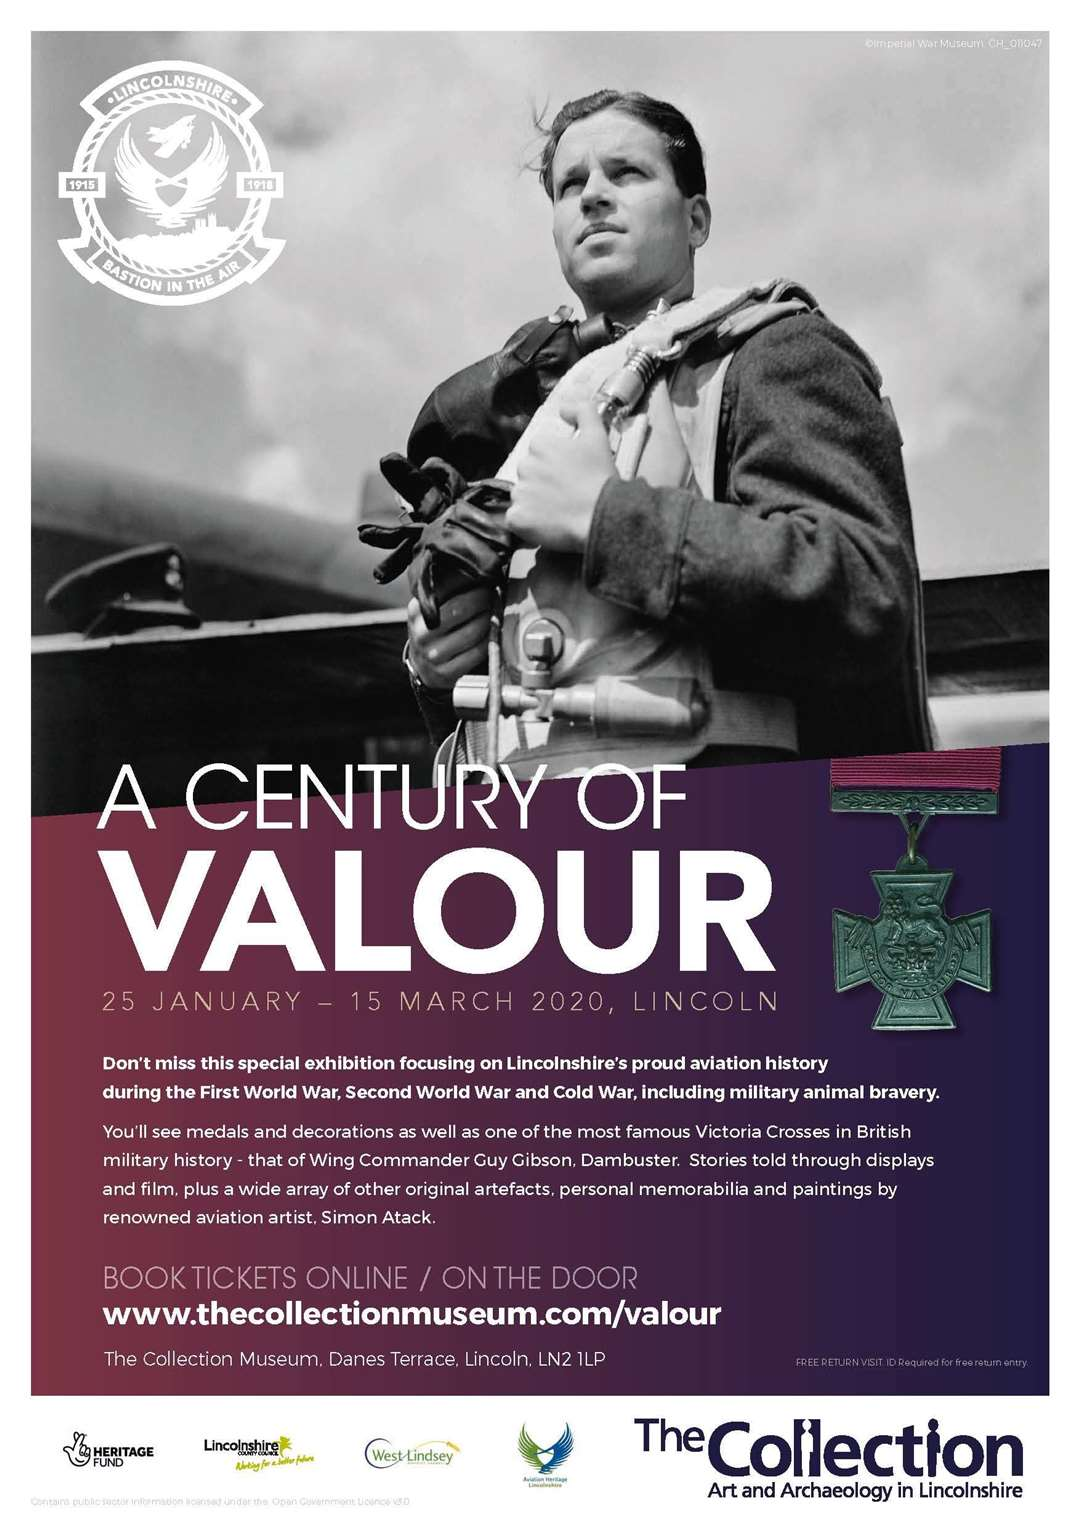 A Century of Valour exhibition continues to run at The Collection in Lincoln until March 15.